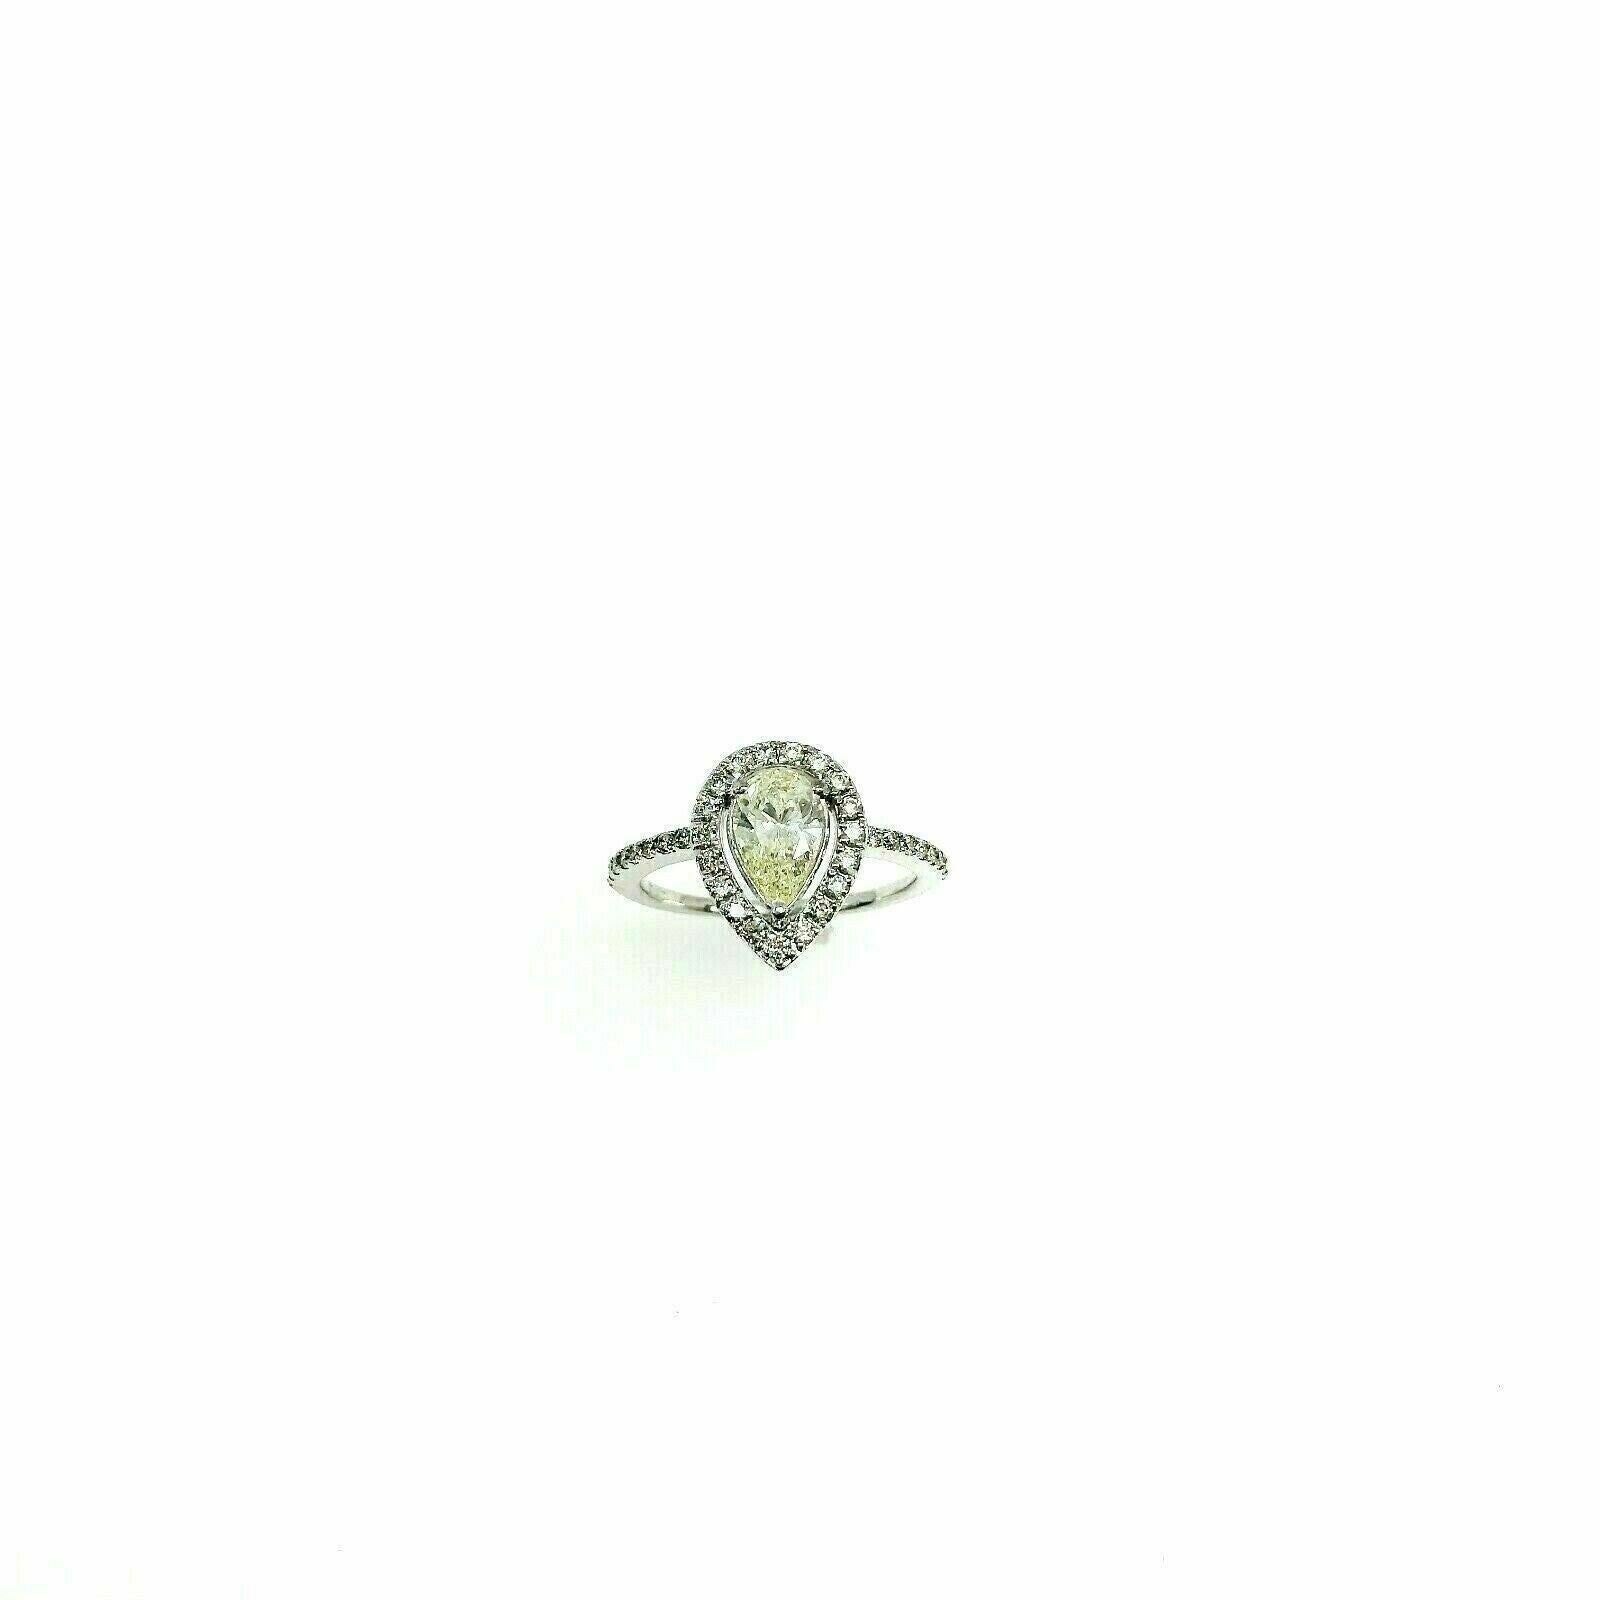 1.18 Carats t.w. Pear Halo Diamond Engagement Ring 0.83 Diamond Center 14K Gold